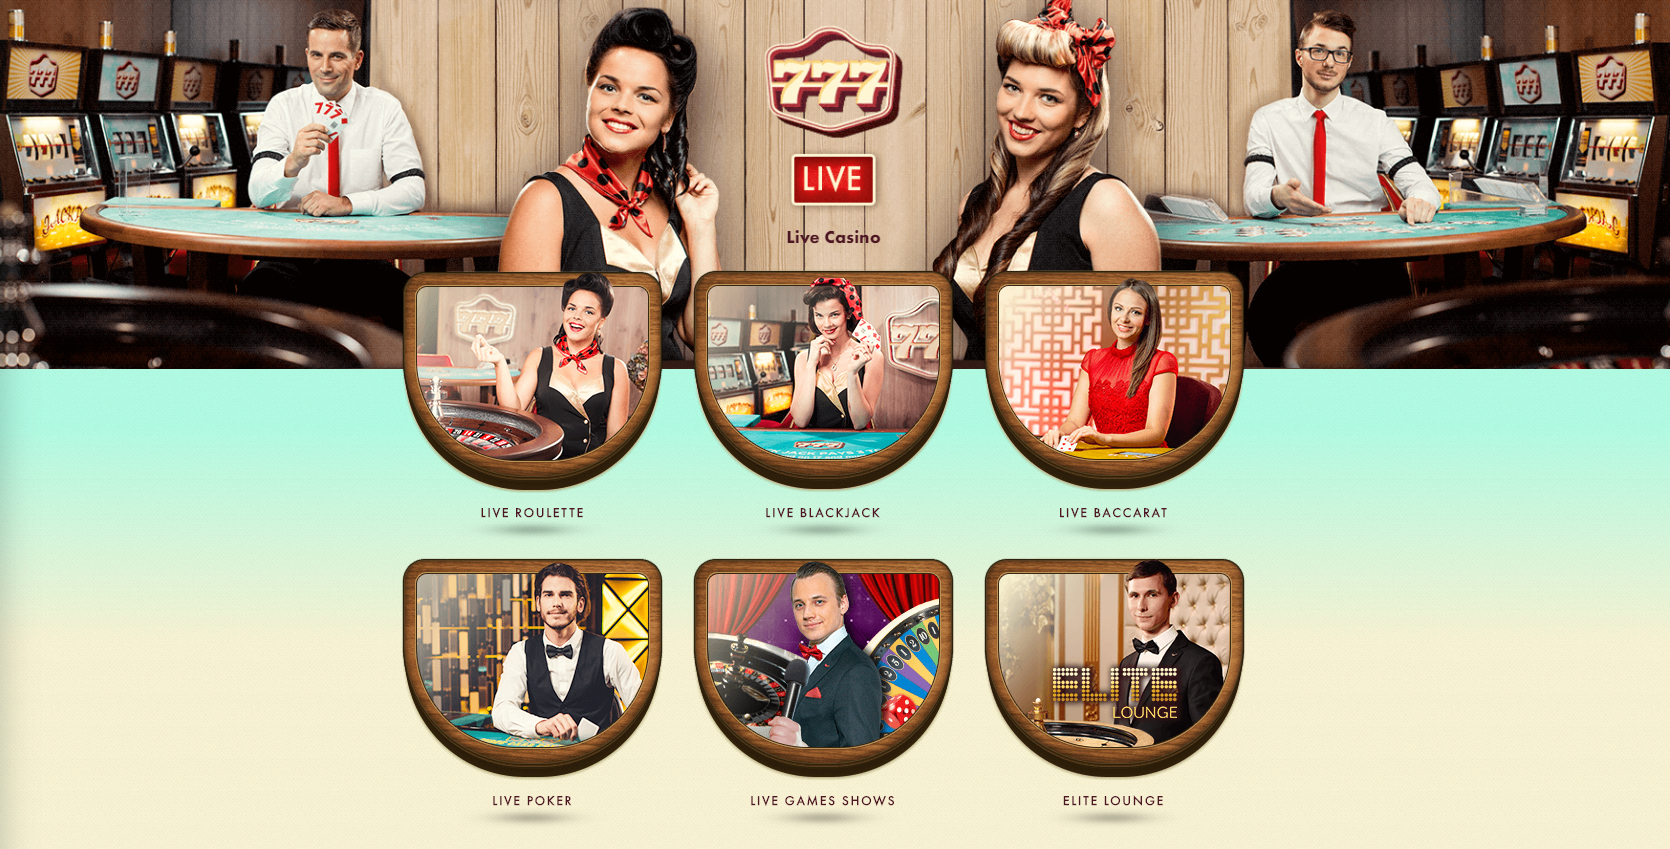 777 live casino - live roulette blackjack baccarat poker game shows elite lounge - retro ladies - live kazino